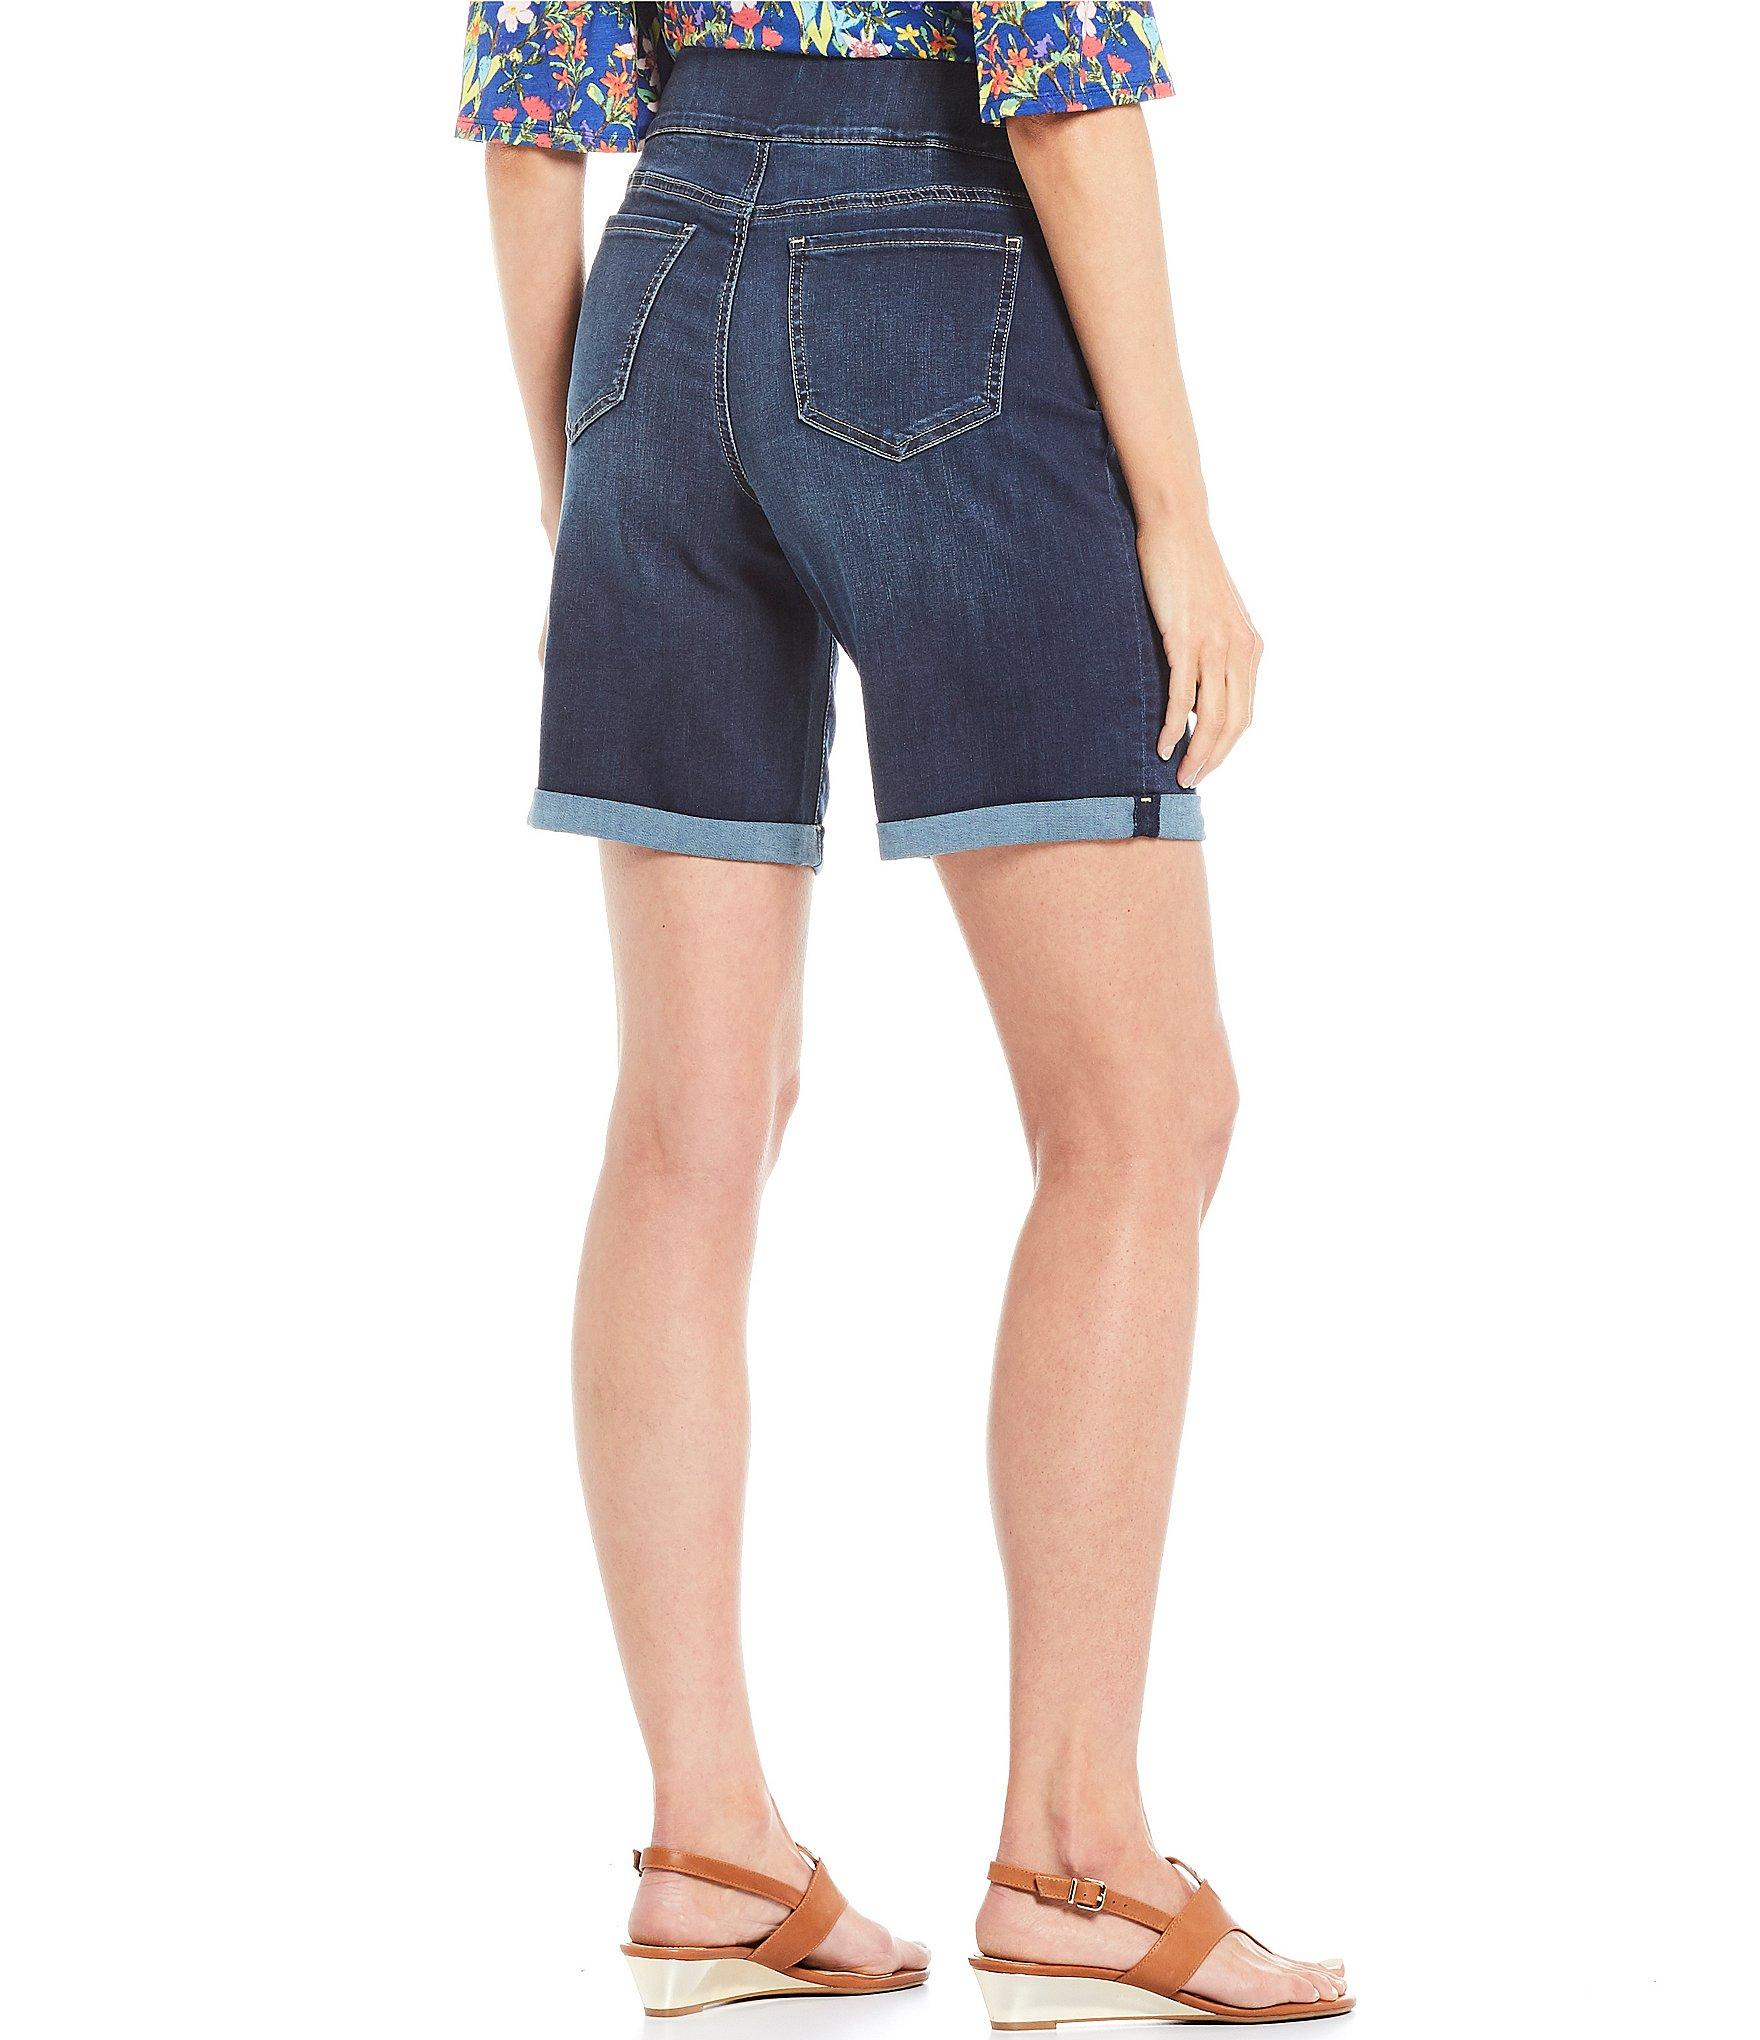 0195cf275 NYDJ - Blue Pull-on Roll Cuff Denim Shorts - Lyst. View fullscreen